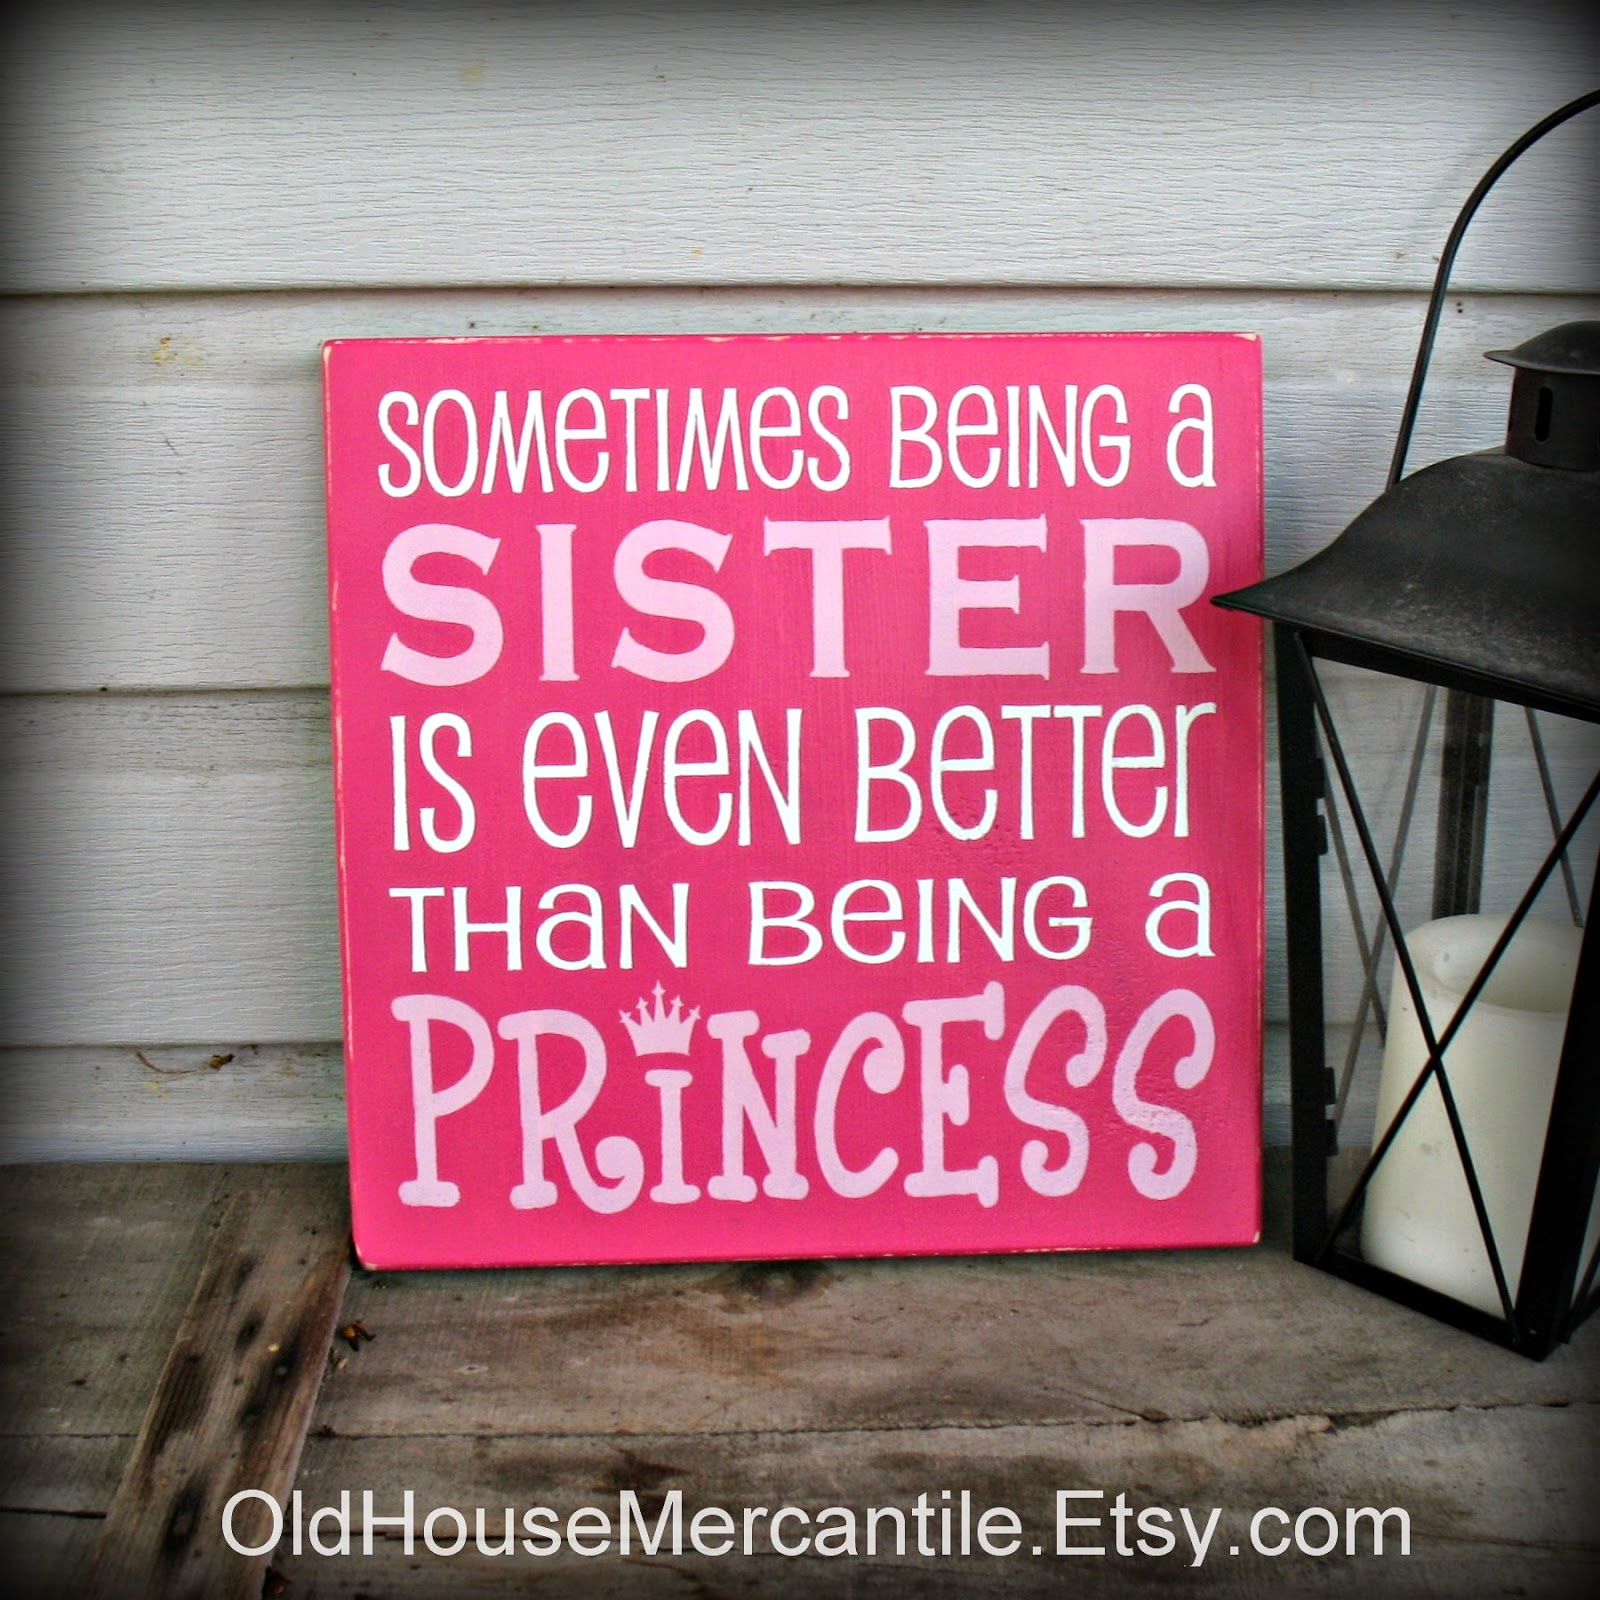 https://www.etsy.com/listing/229433277/sister-is-better-than-princess-childrens?ref=shop_home_active_3